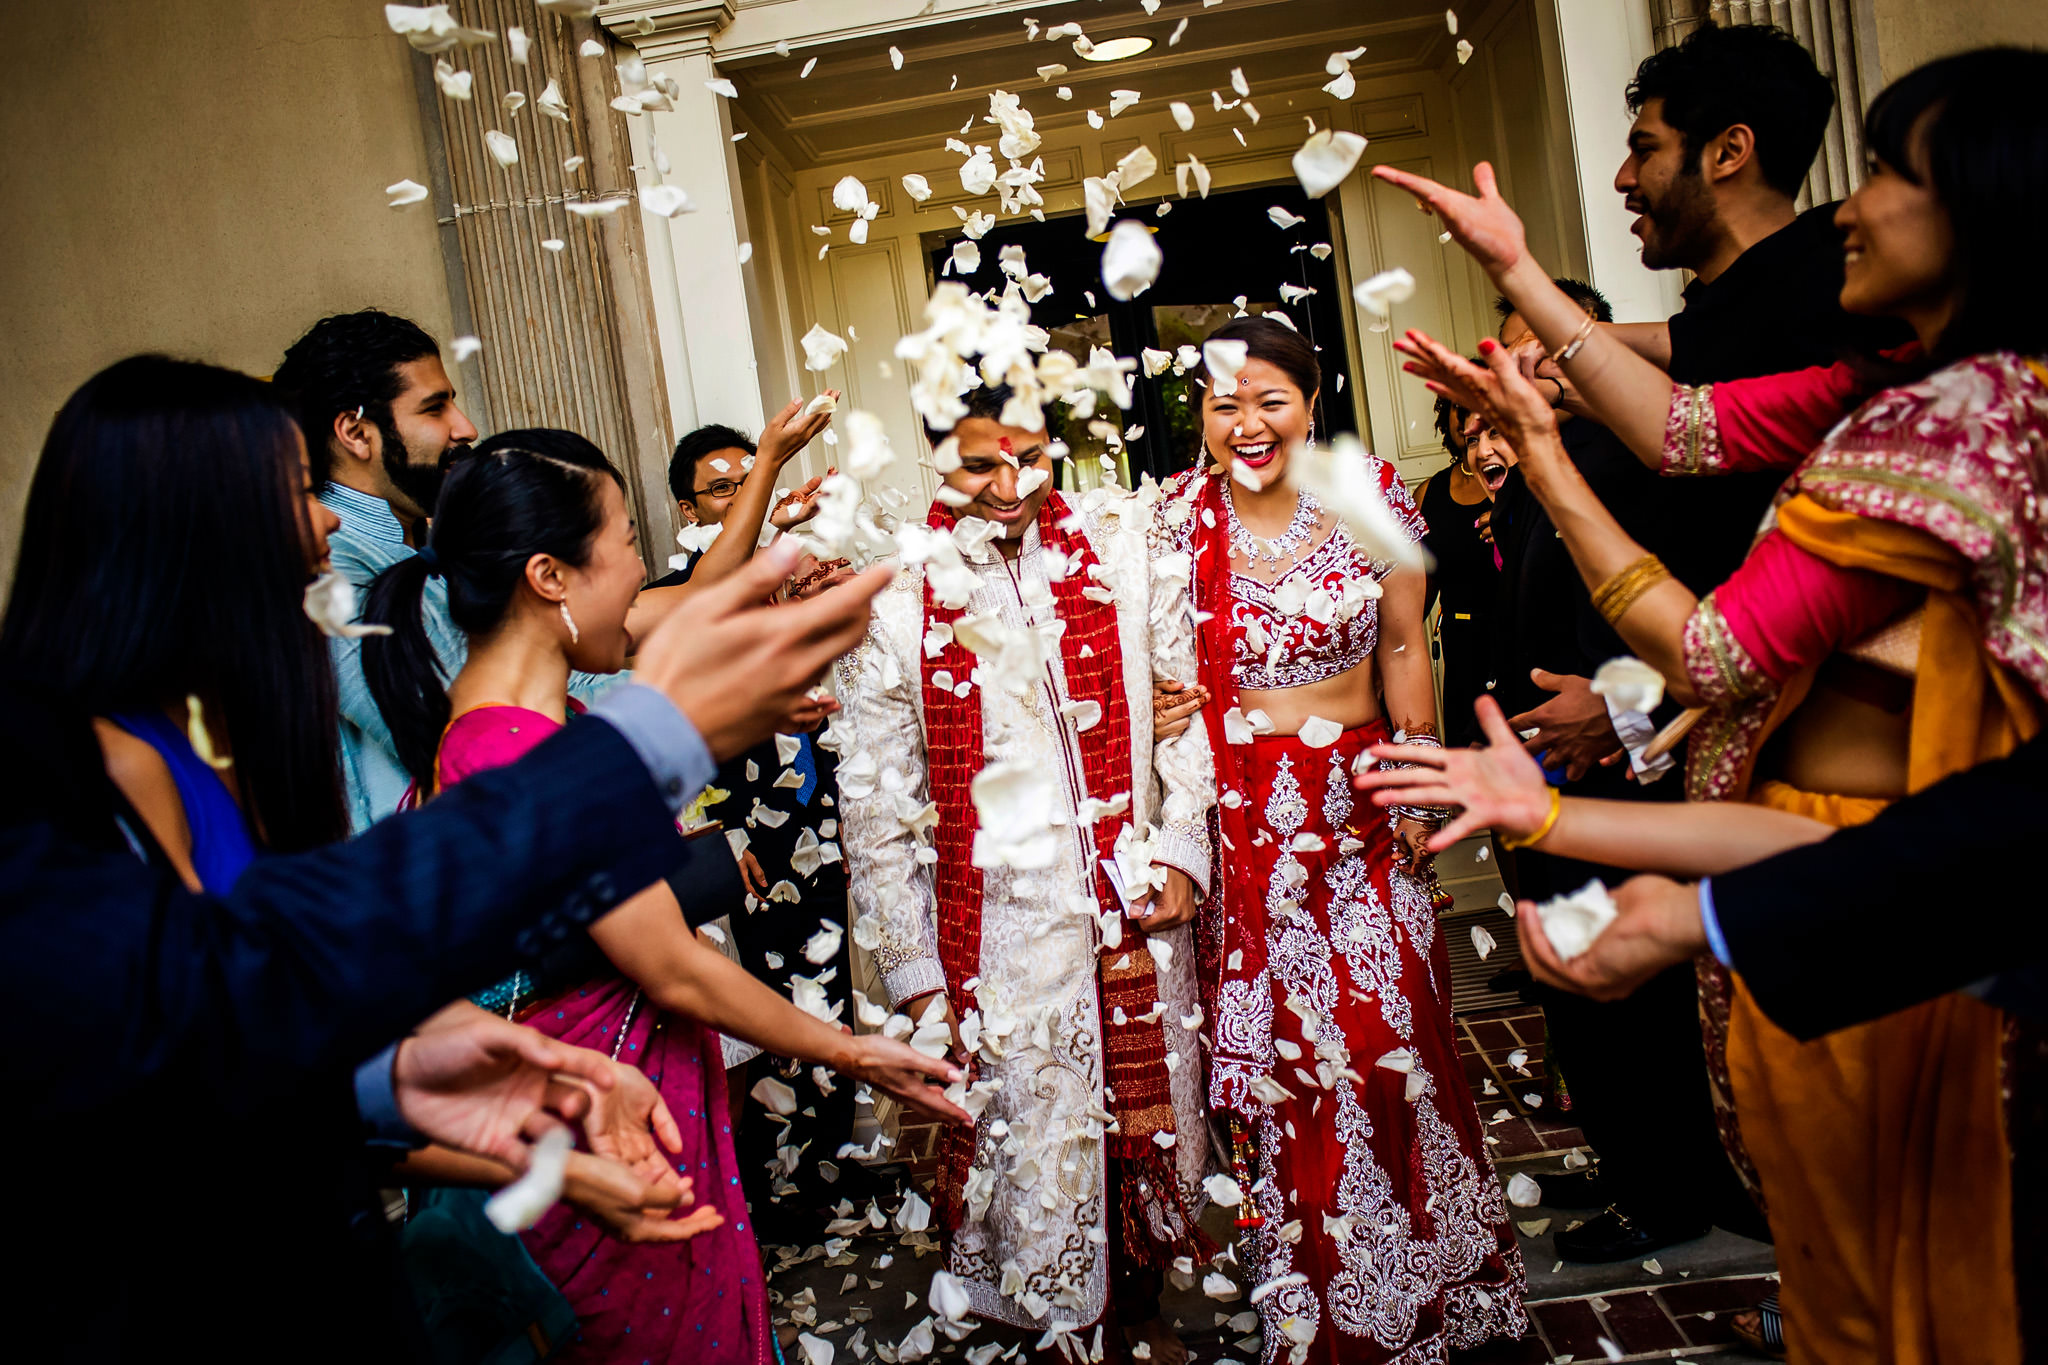 Lulu and Rahul Khara's wedding at Sugarloaf Country Club in Duluth, GA.